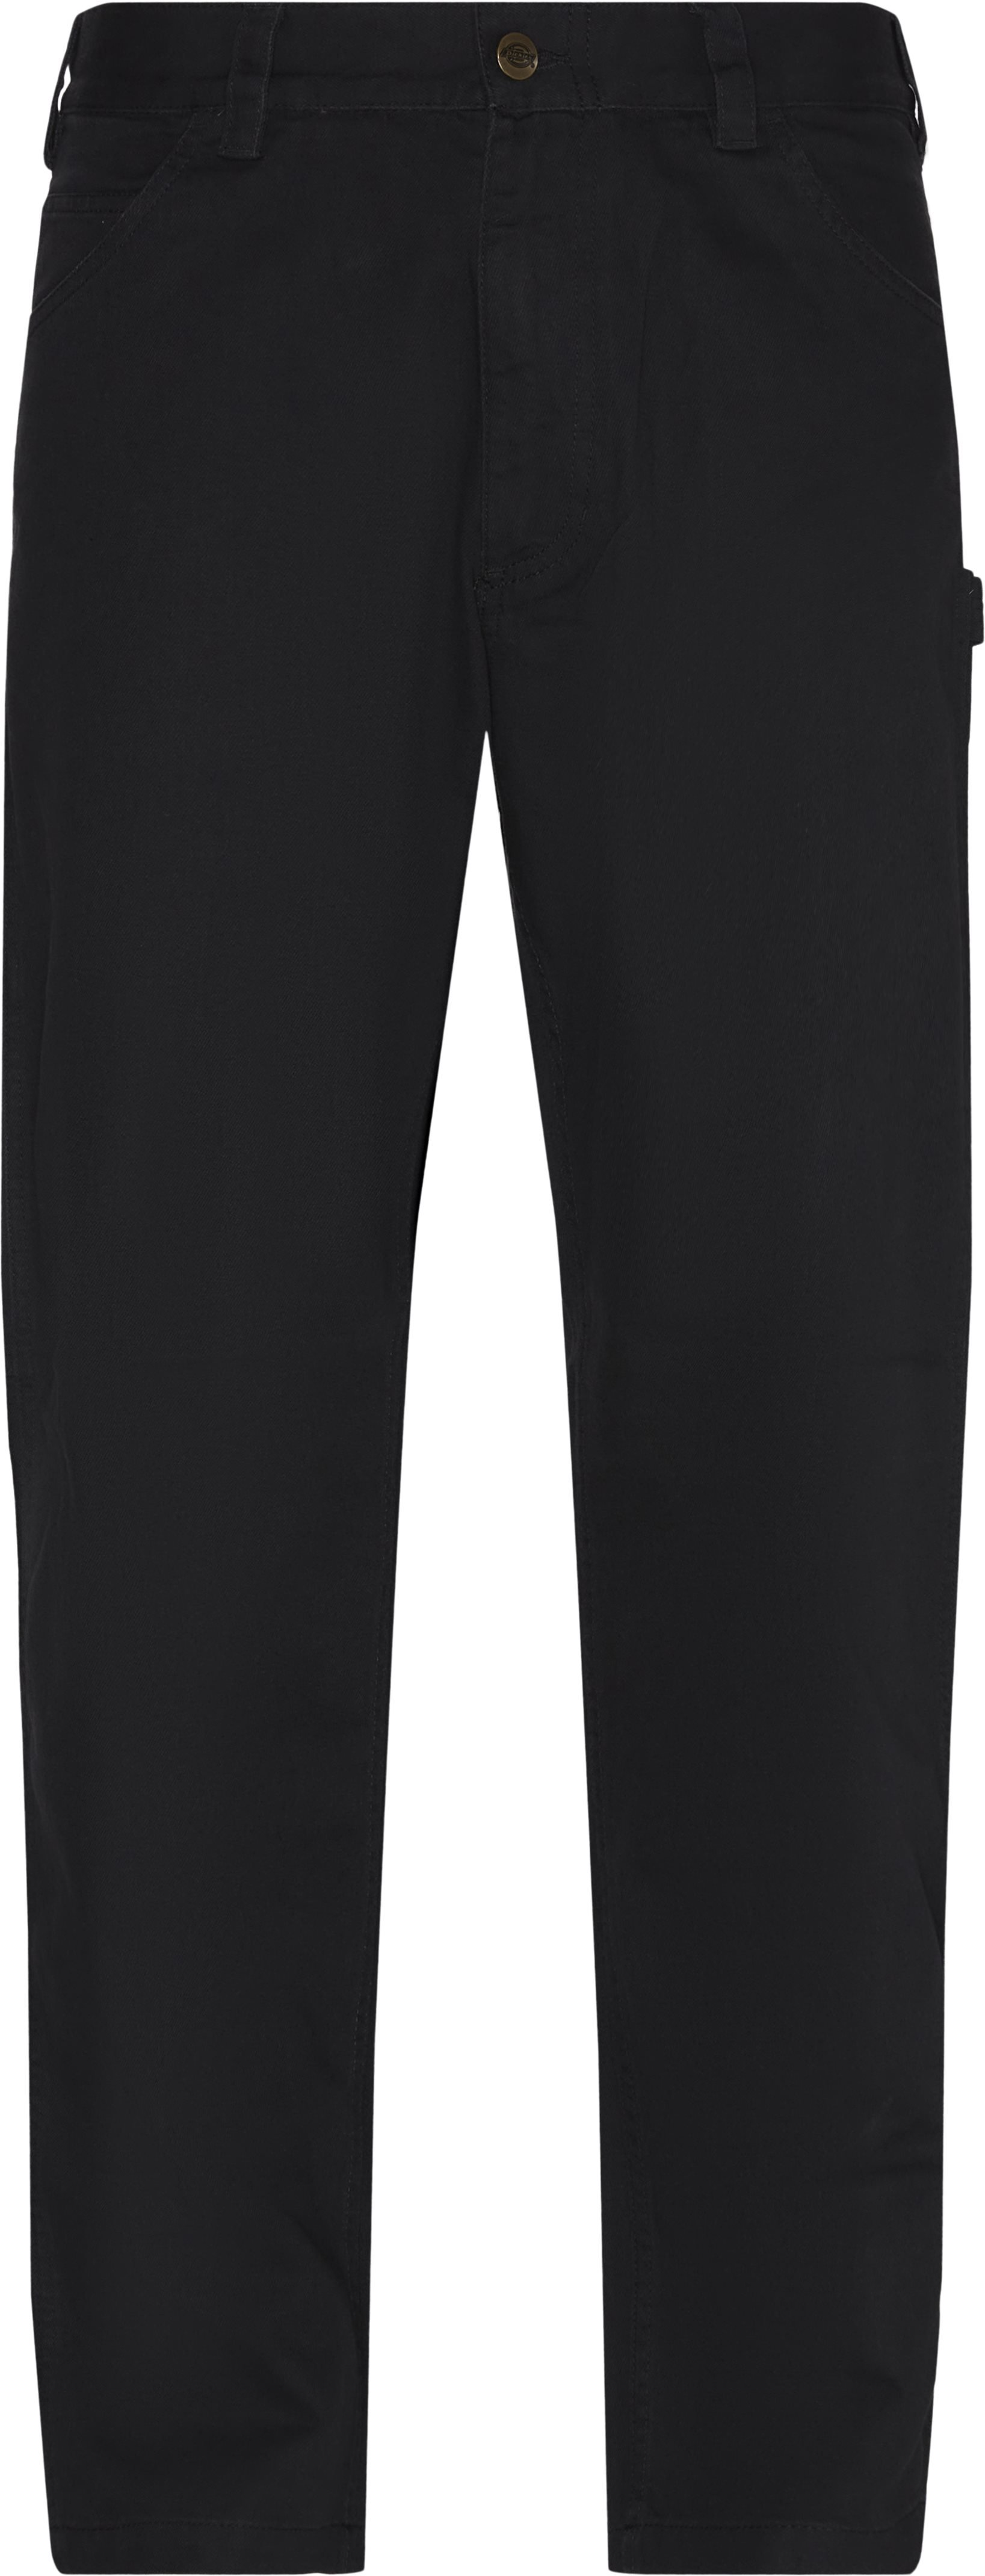 Fairdale Pant - Bukser - Straight fit - Sort